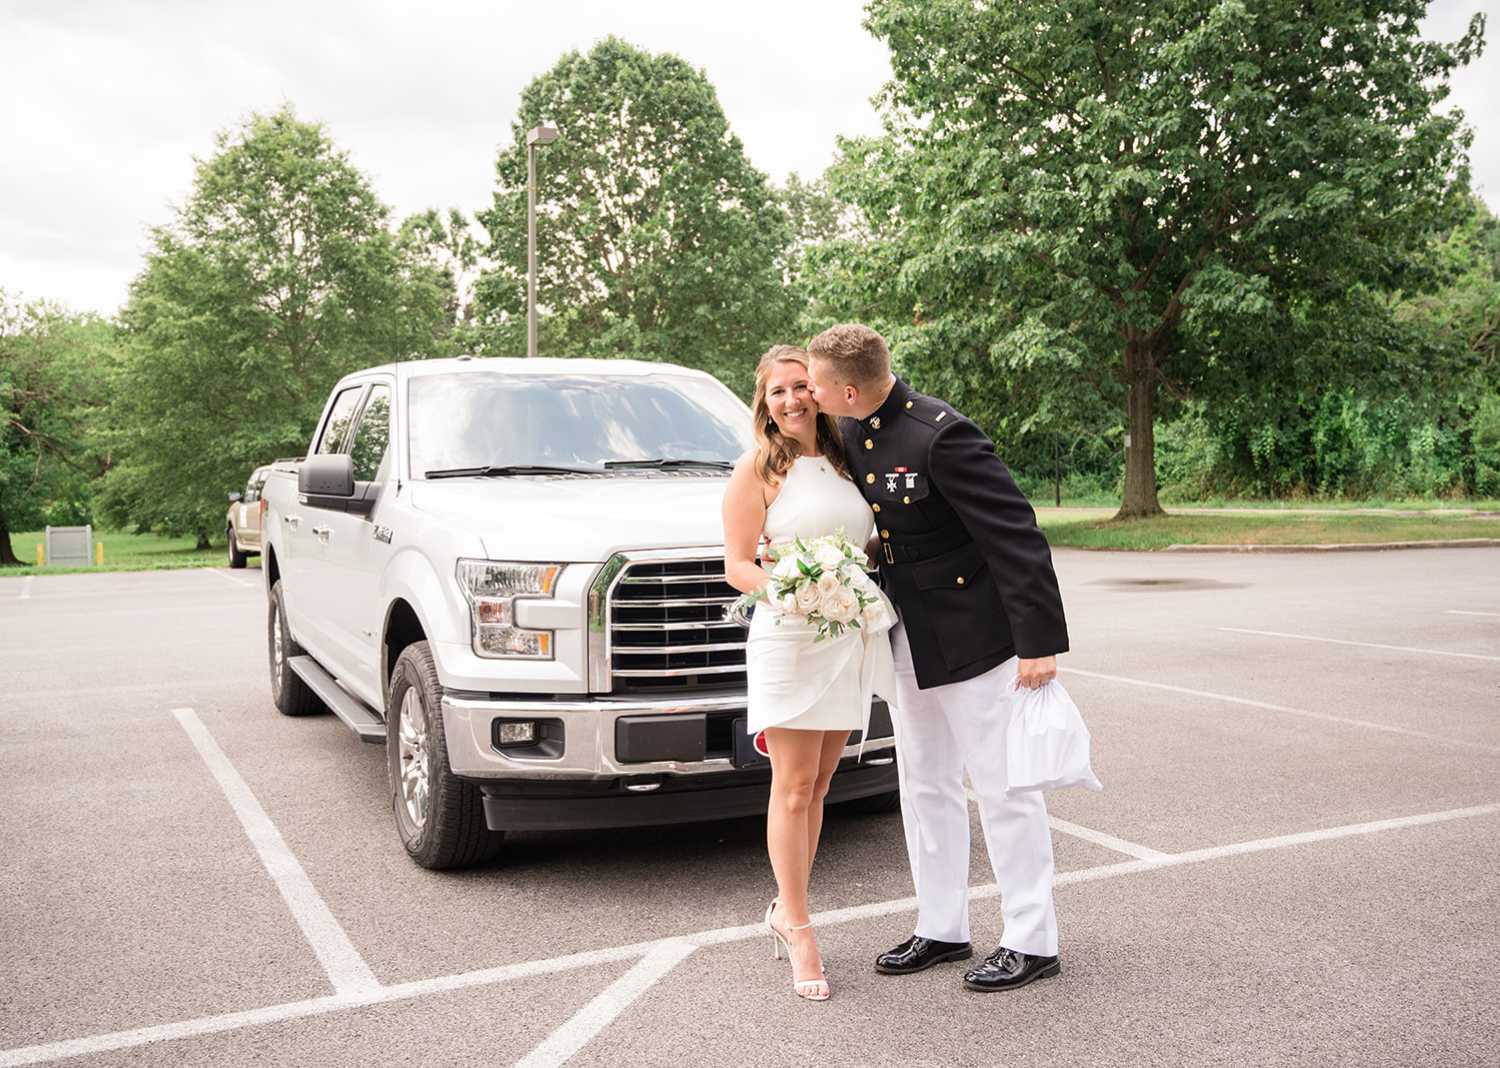 groom kisses his bride on the cheek as they pose i front of their white truck